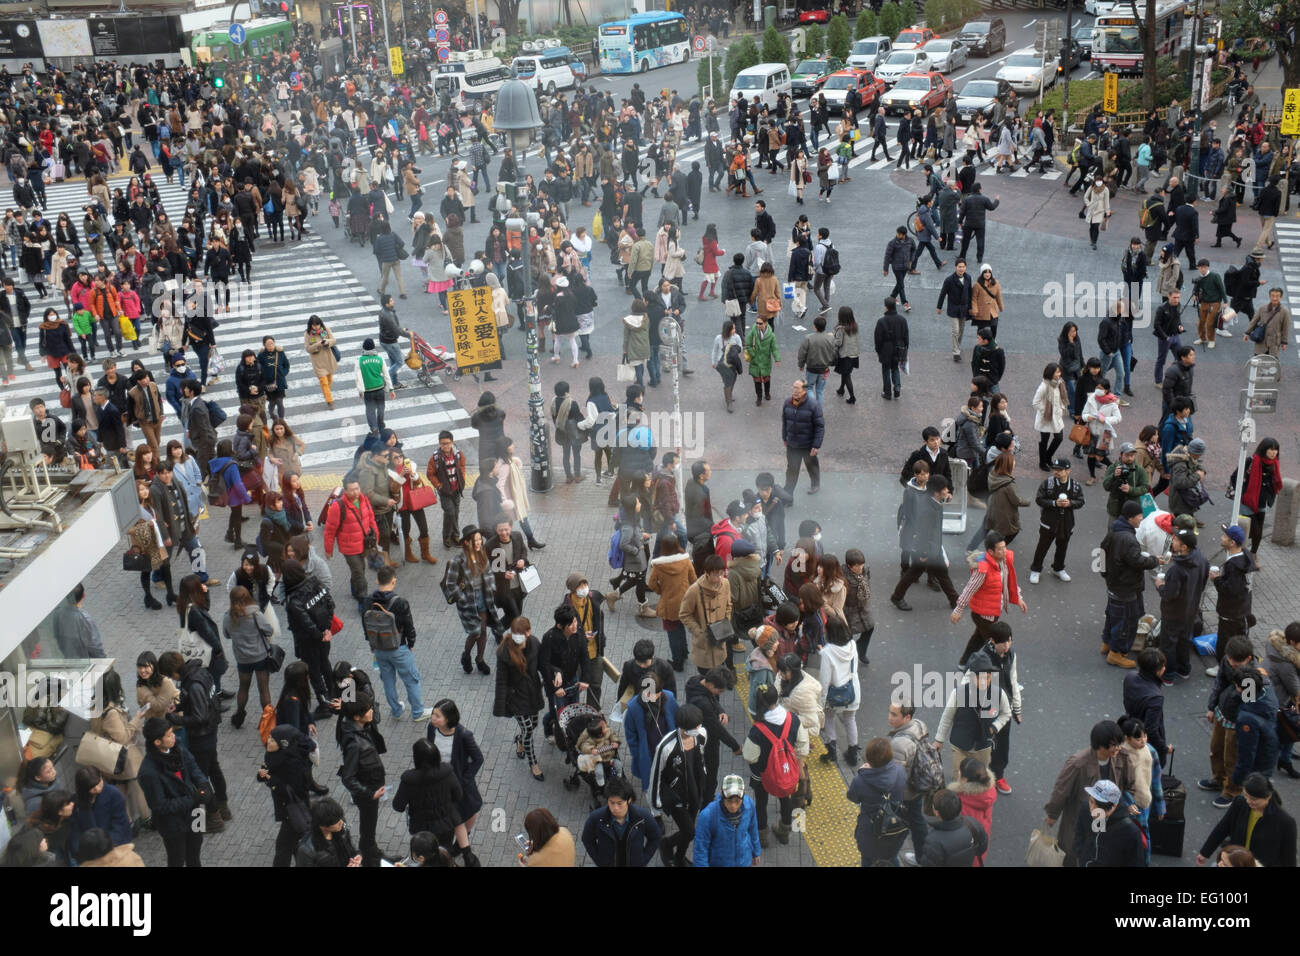 Crowds at the Sibuya crossing in front of Shibuya station. The crossing is reputed to be one of the world's - Stock Image